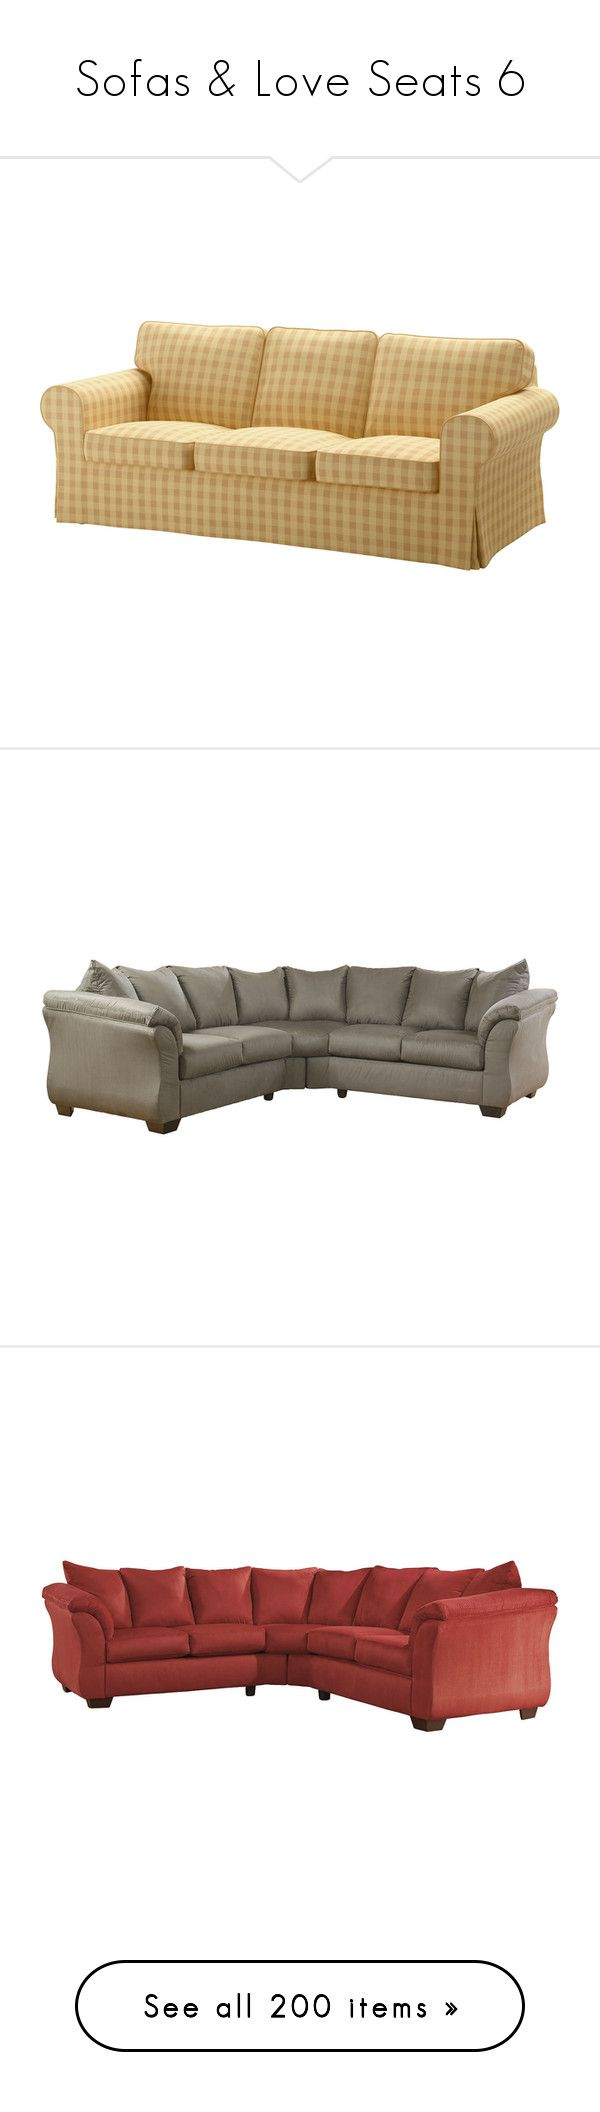 """""""Sofas & Love Seats 6"""" by mysfytdesigns ❤ liked on Polyvore featuring home, furniture, sofas, signature design by ashley furniture, asian furniture, oriental style furniture, oriental furniture, asian sofa, signature design by ashley and signature design by ashley sectional"""